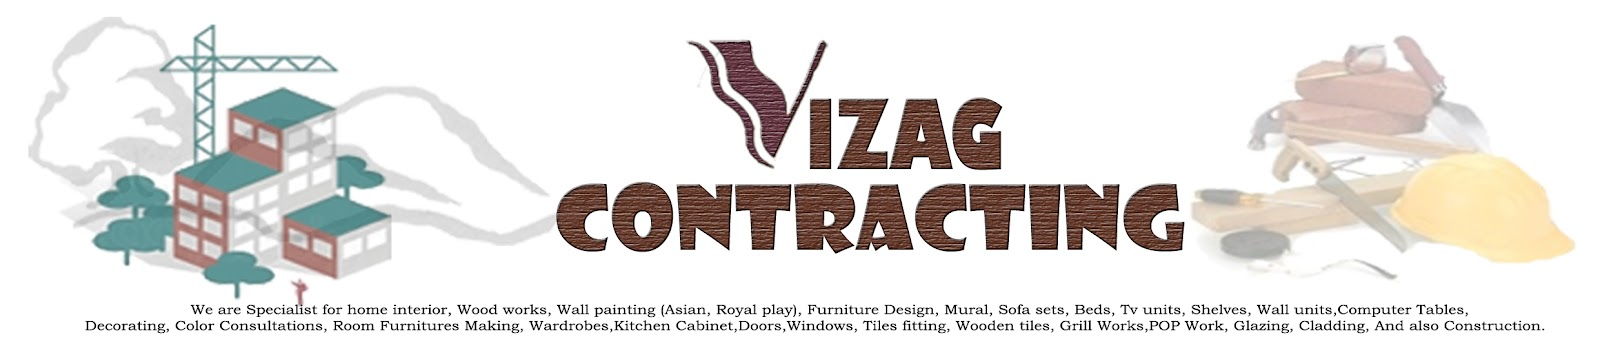 Vizag Contracting October 2010